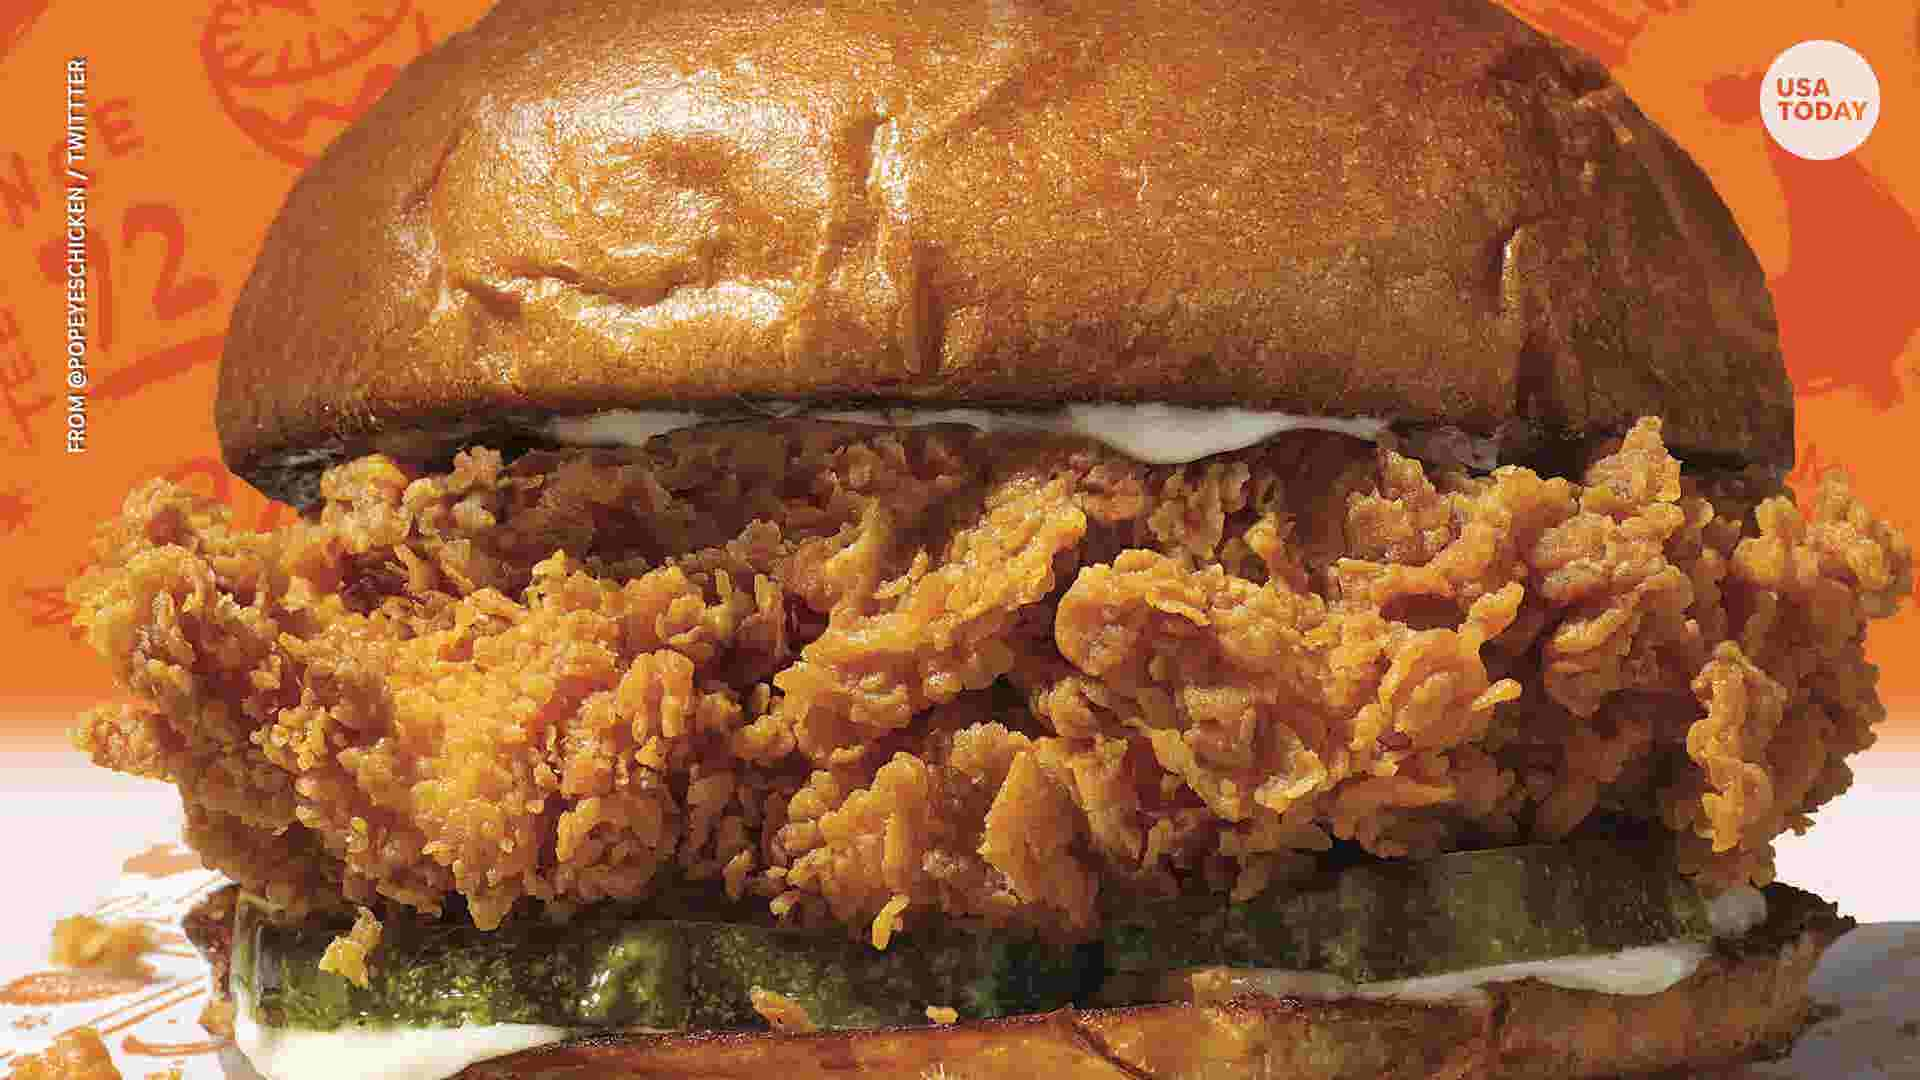 If you're trying to get a Popeyes chicken sandwich in Indianapolis, good luck